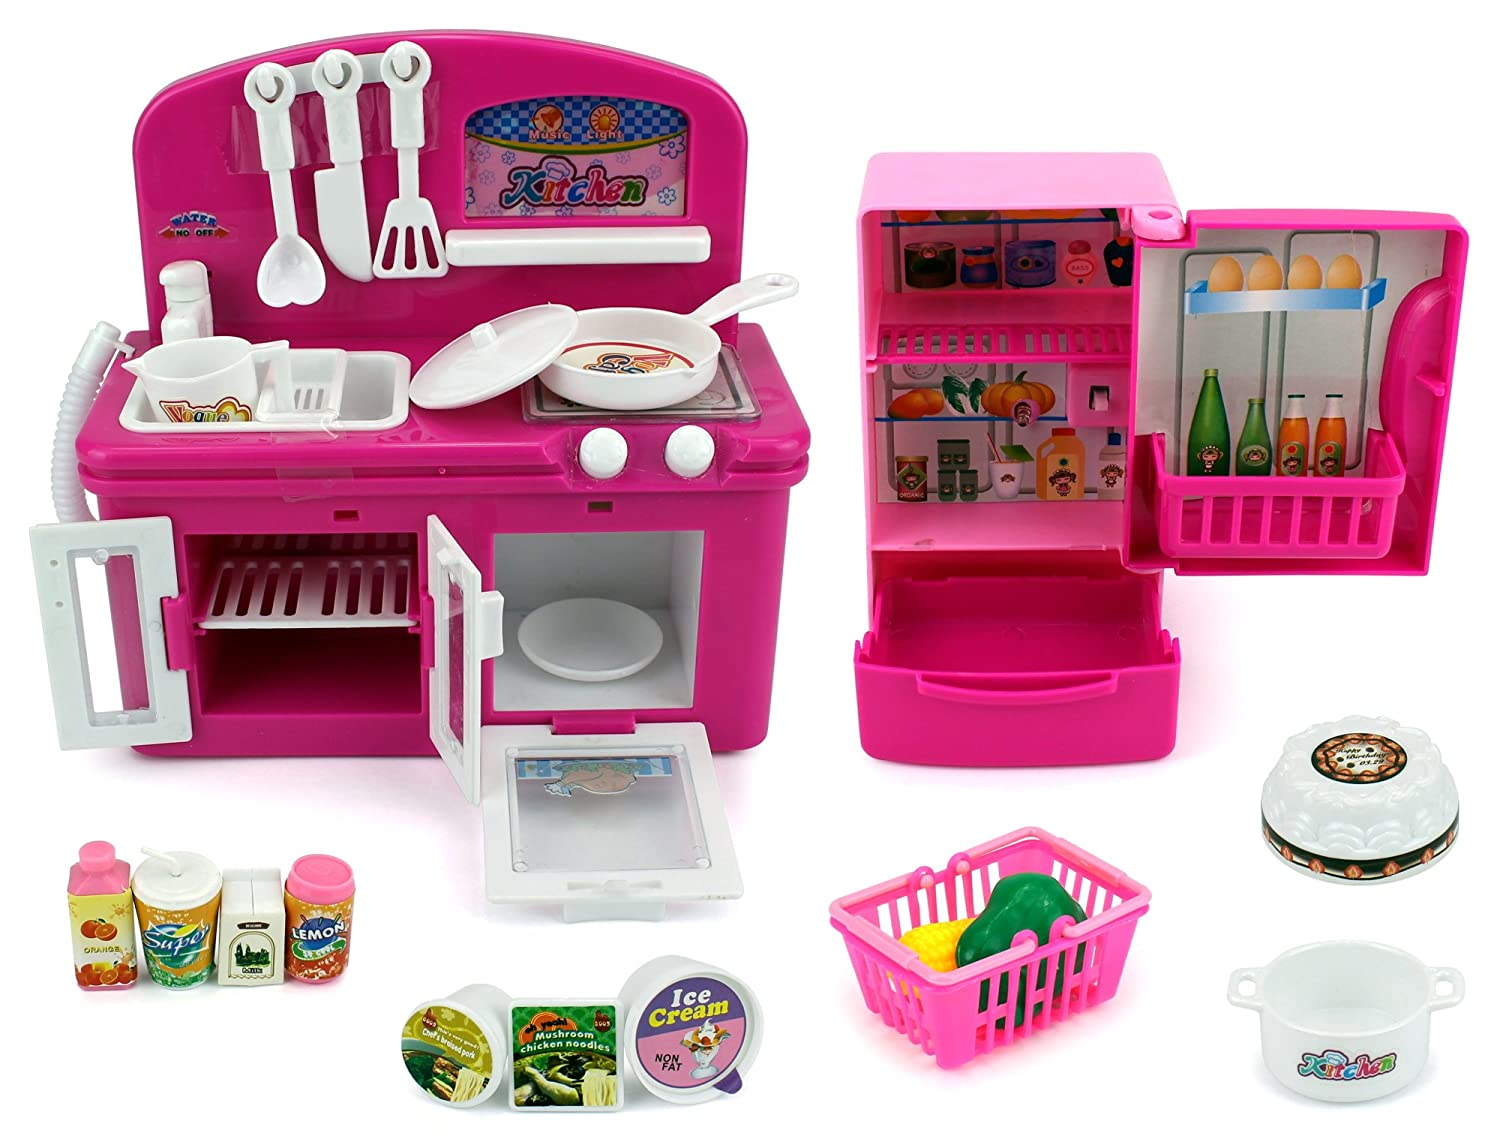 e2630c077dac Amazon.com: Mini Dream Kitchen Children's Kid's Toy Kitchen Playset w/  Accessories: Toys & Games